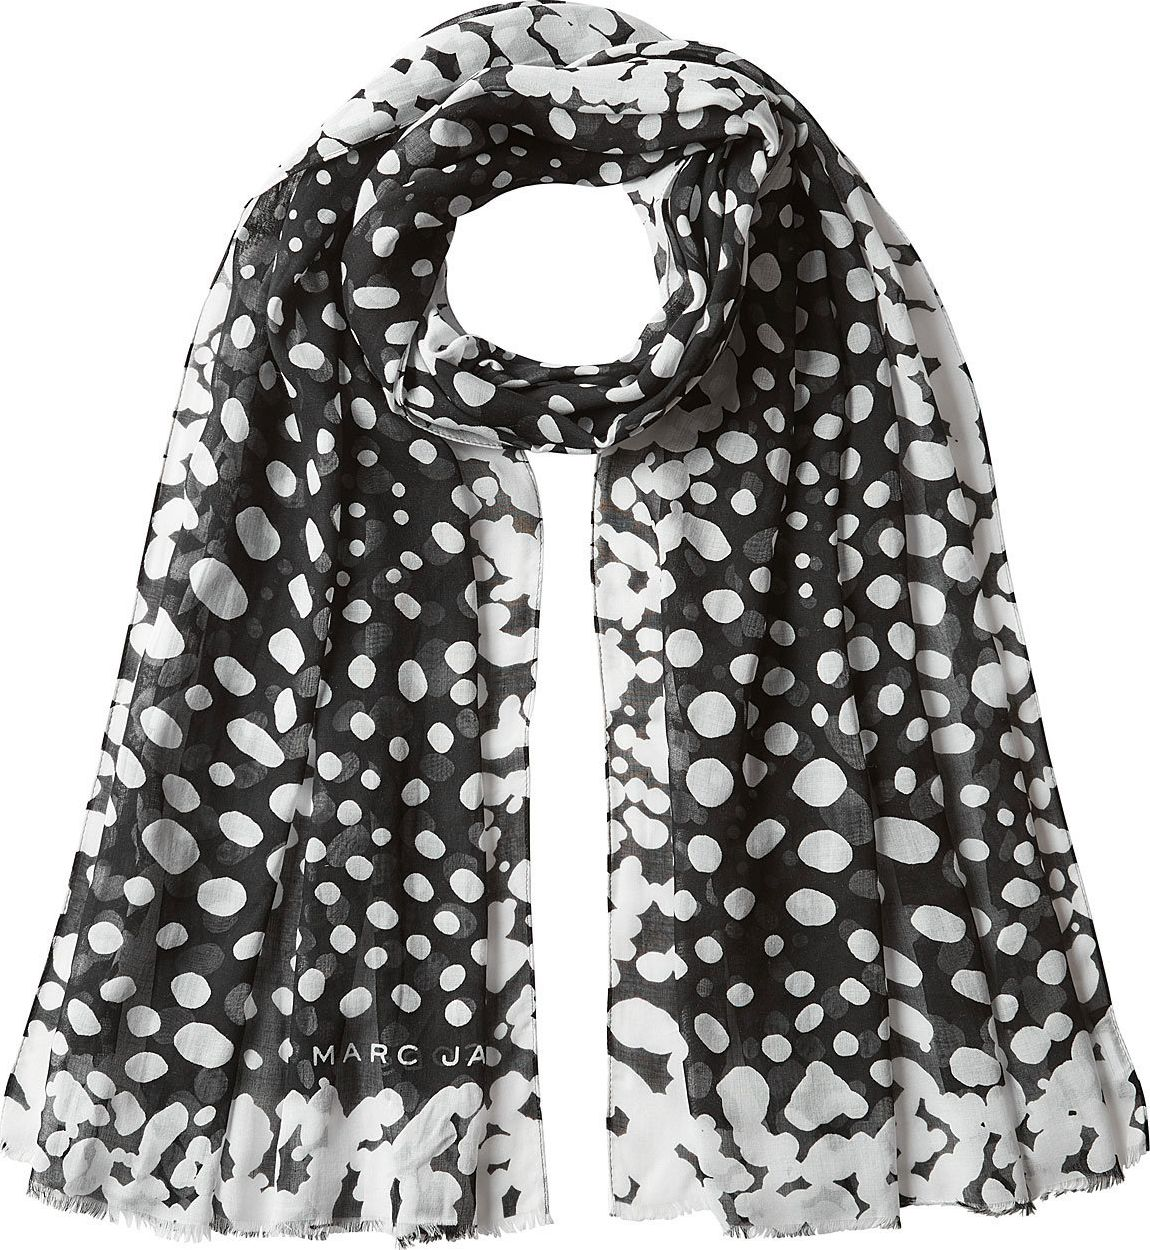 MARC JACOBS - Printed Scarf with Silk